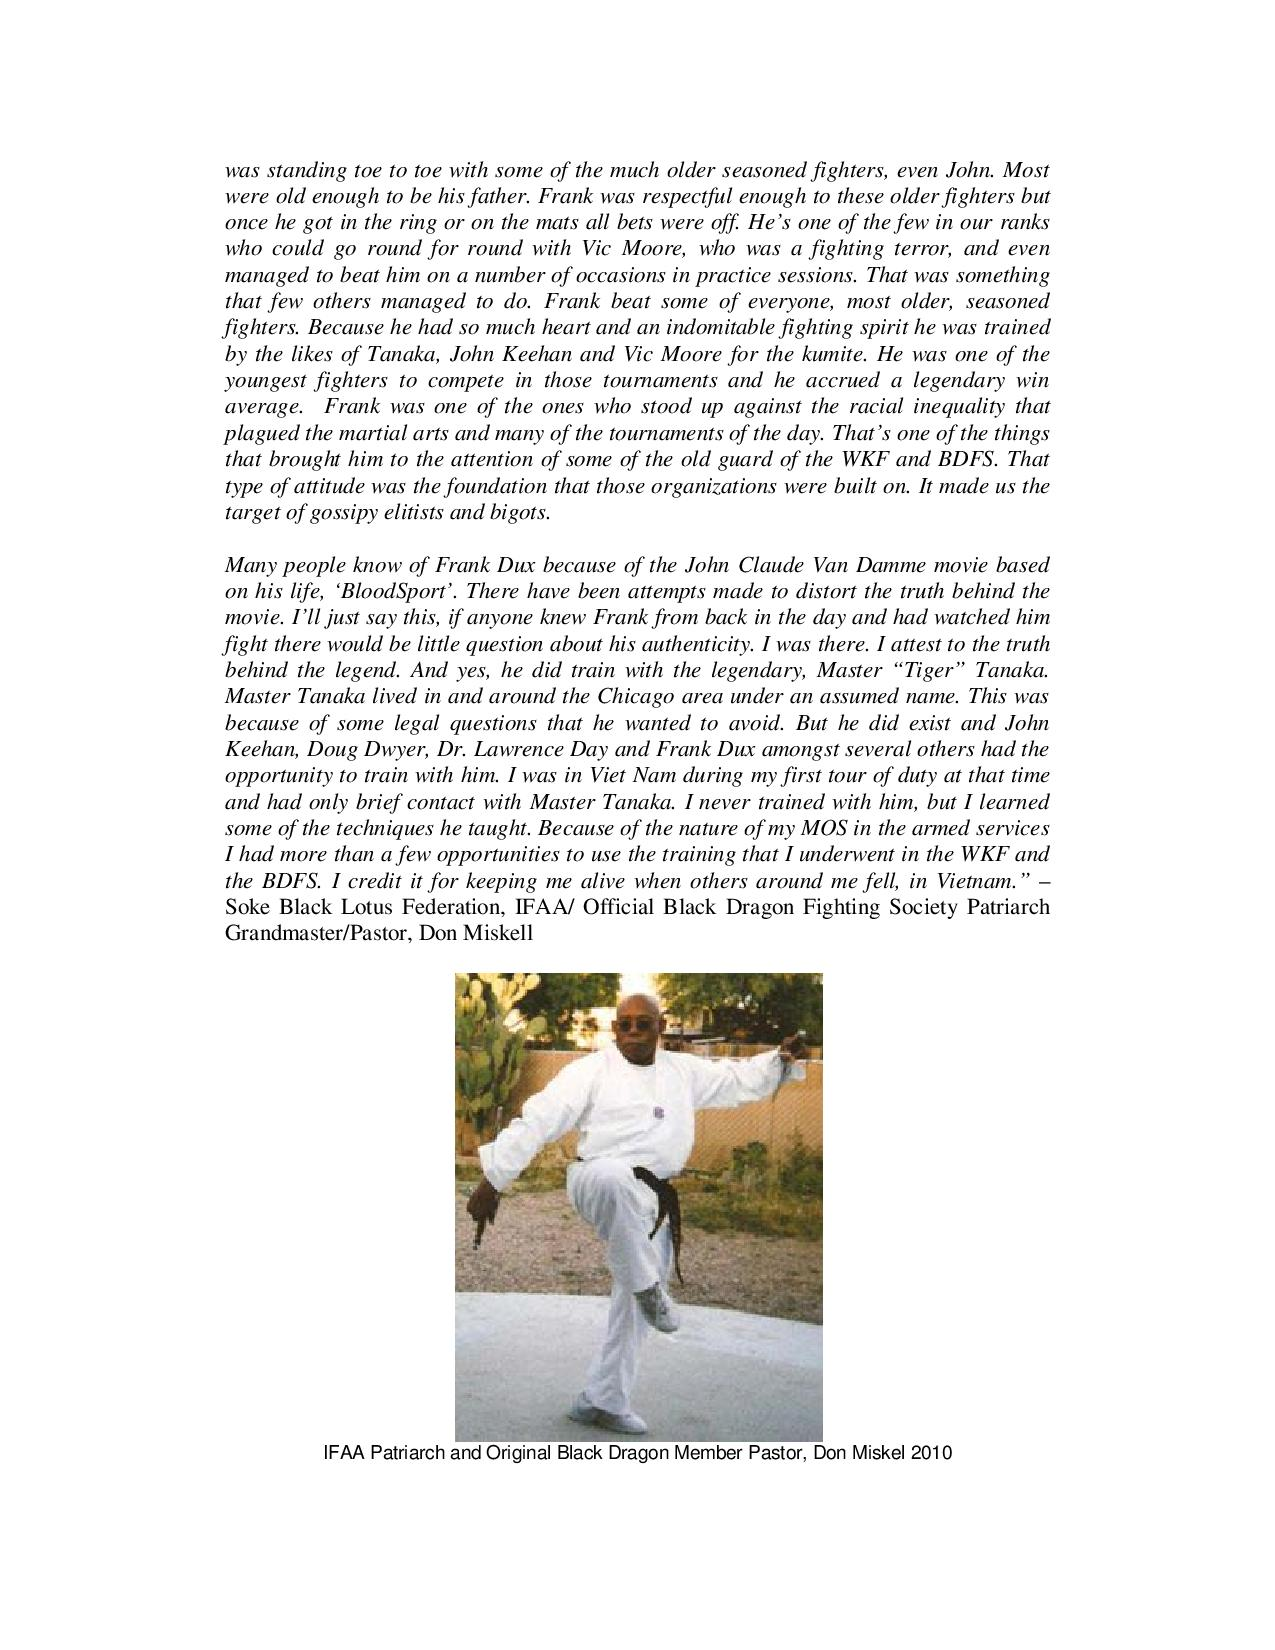 frank-dux-the-warrior-secure-page-045